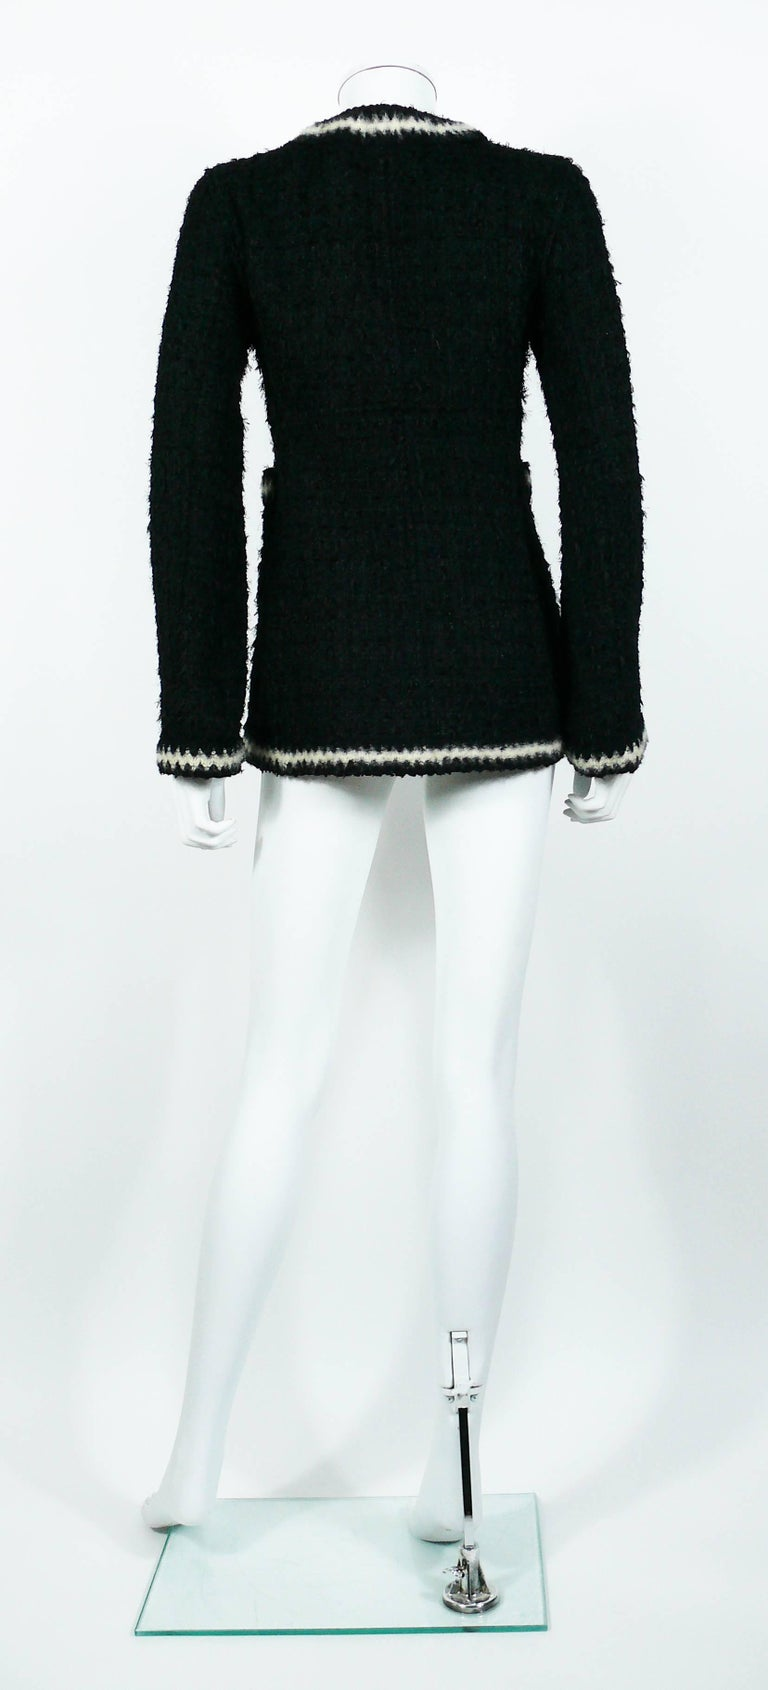 Chanel Vintage Fall 1998 Iconic Black & White Trim Boucle Cardigan Jacket For Sale 3